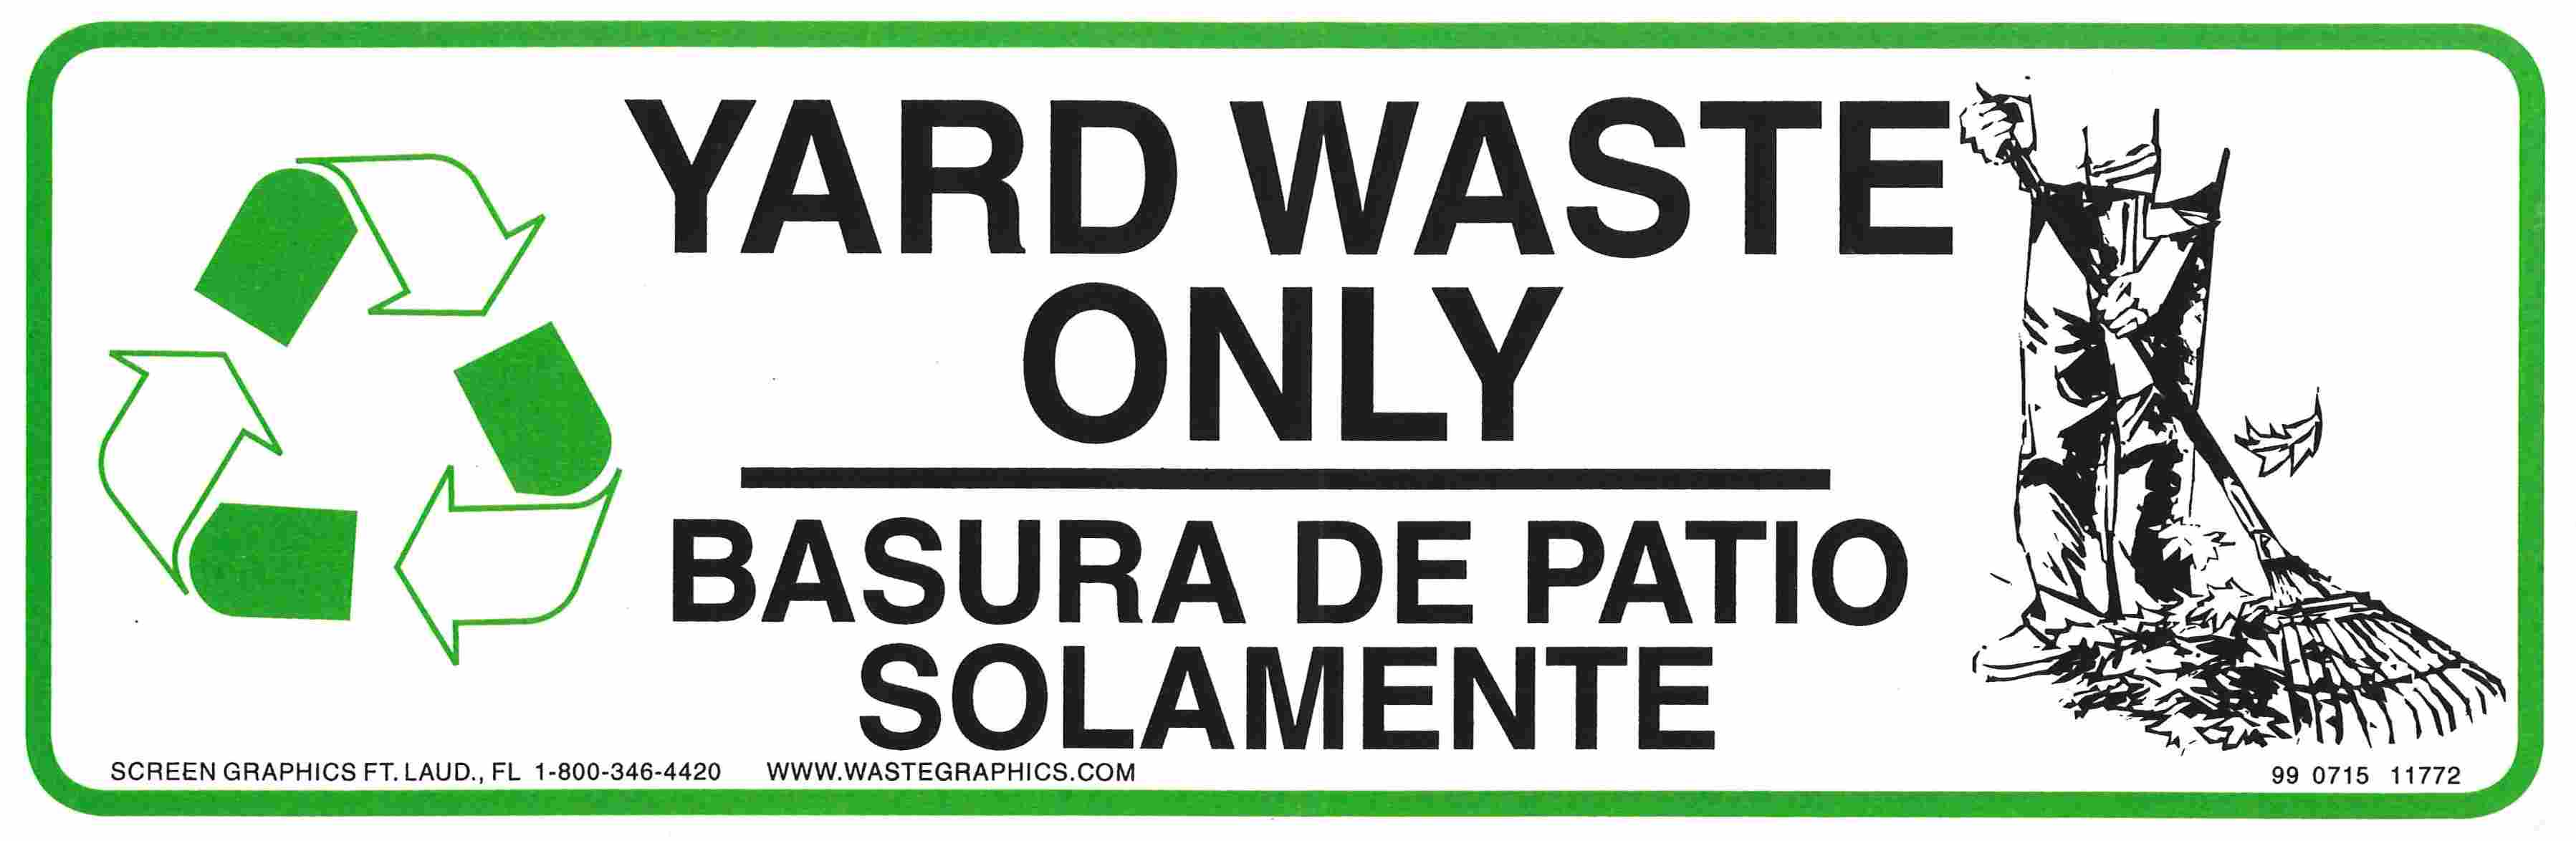 Yard Waste sticker image